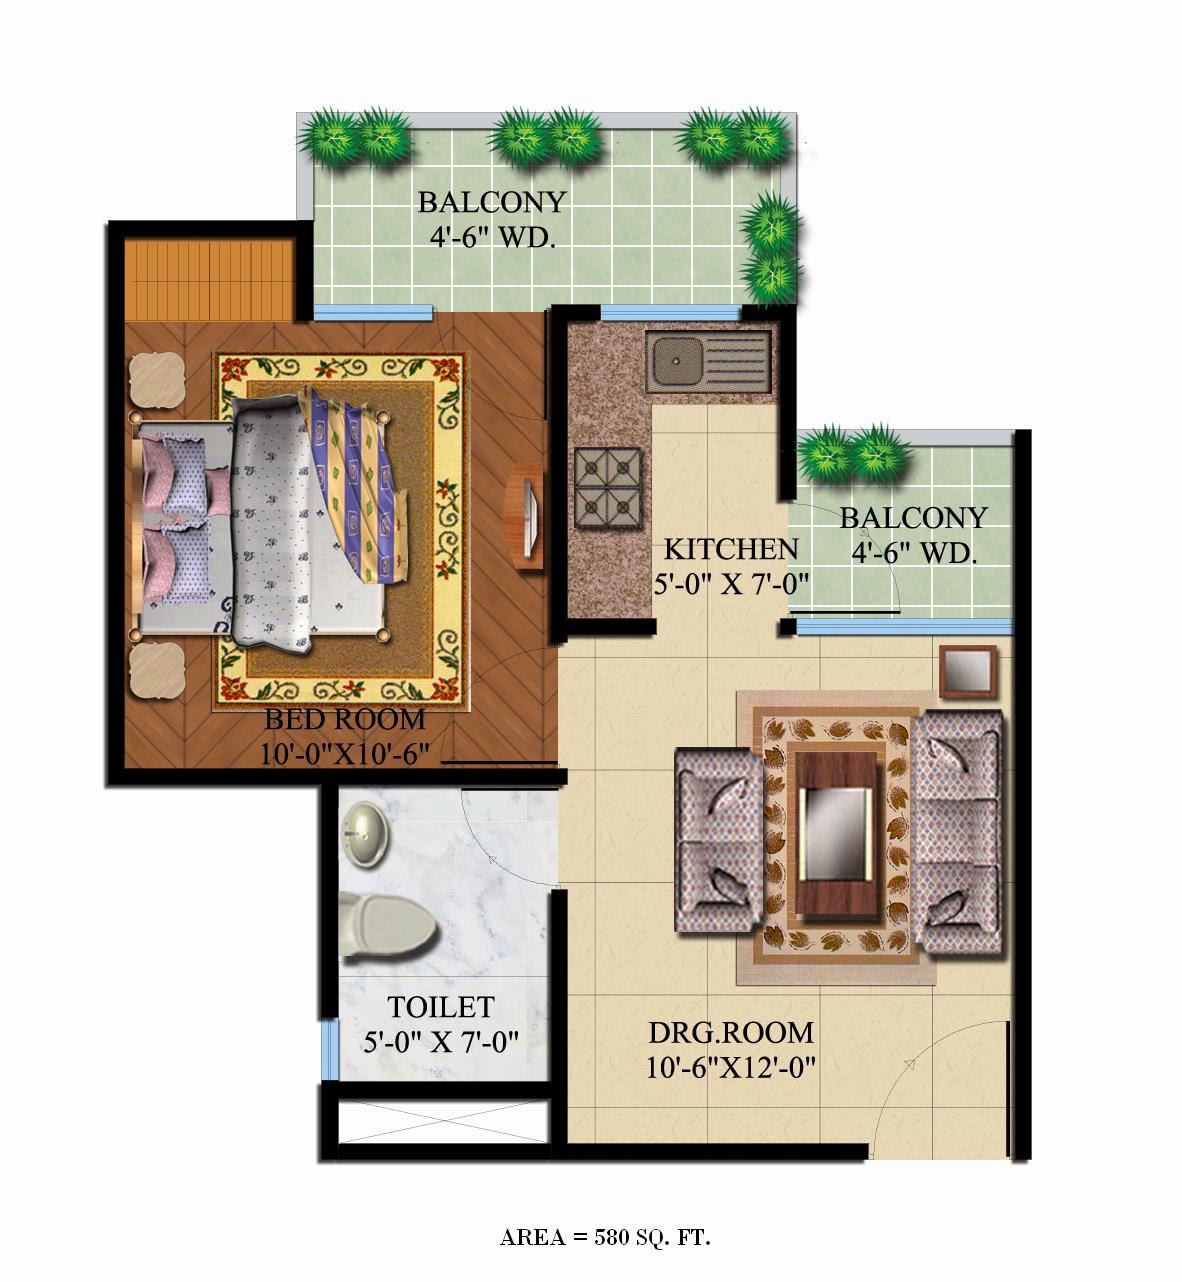 Foundation dezin decor home plans layouts for Studio apartments plans